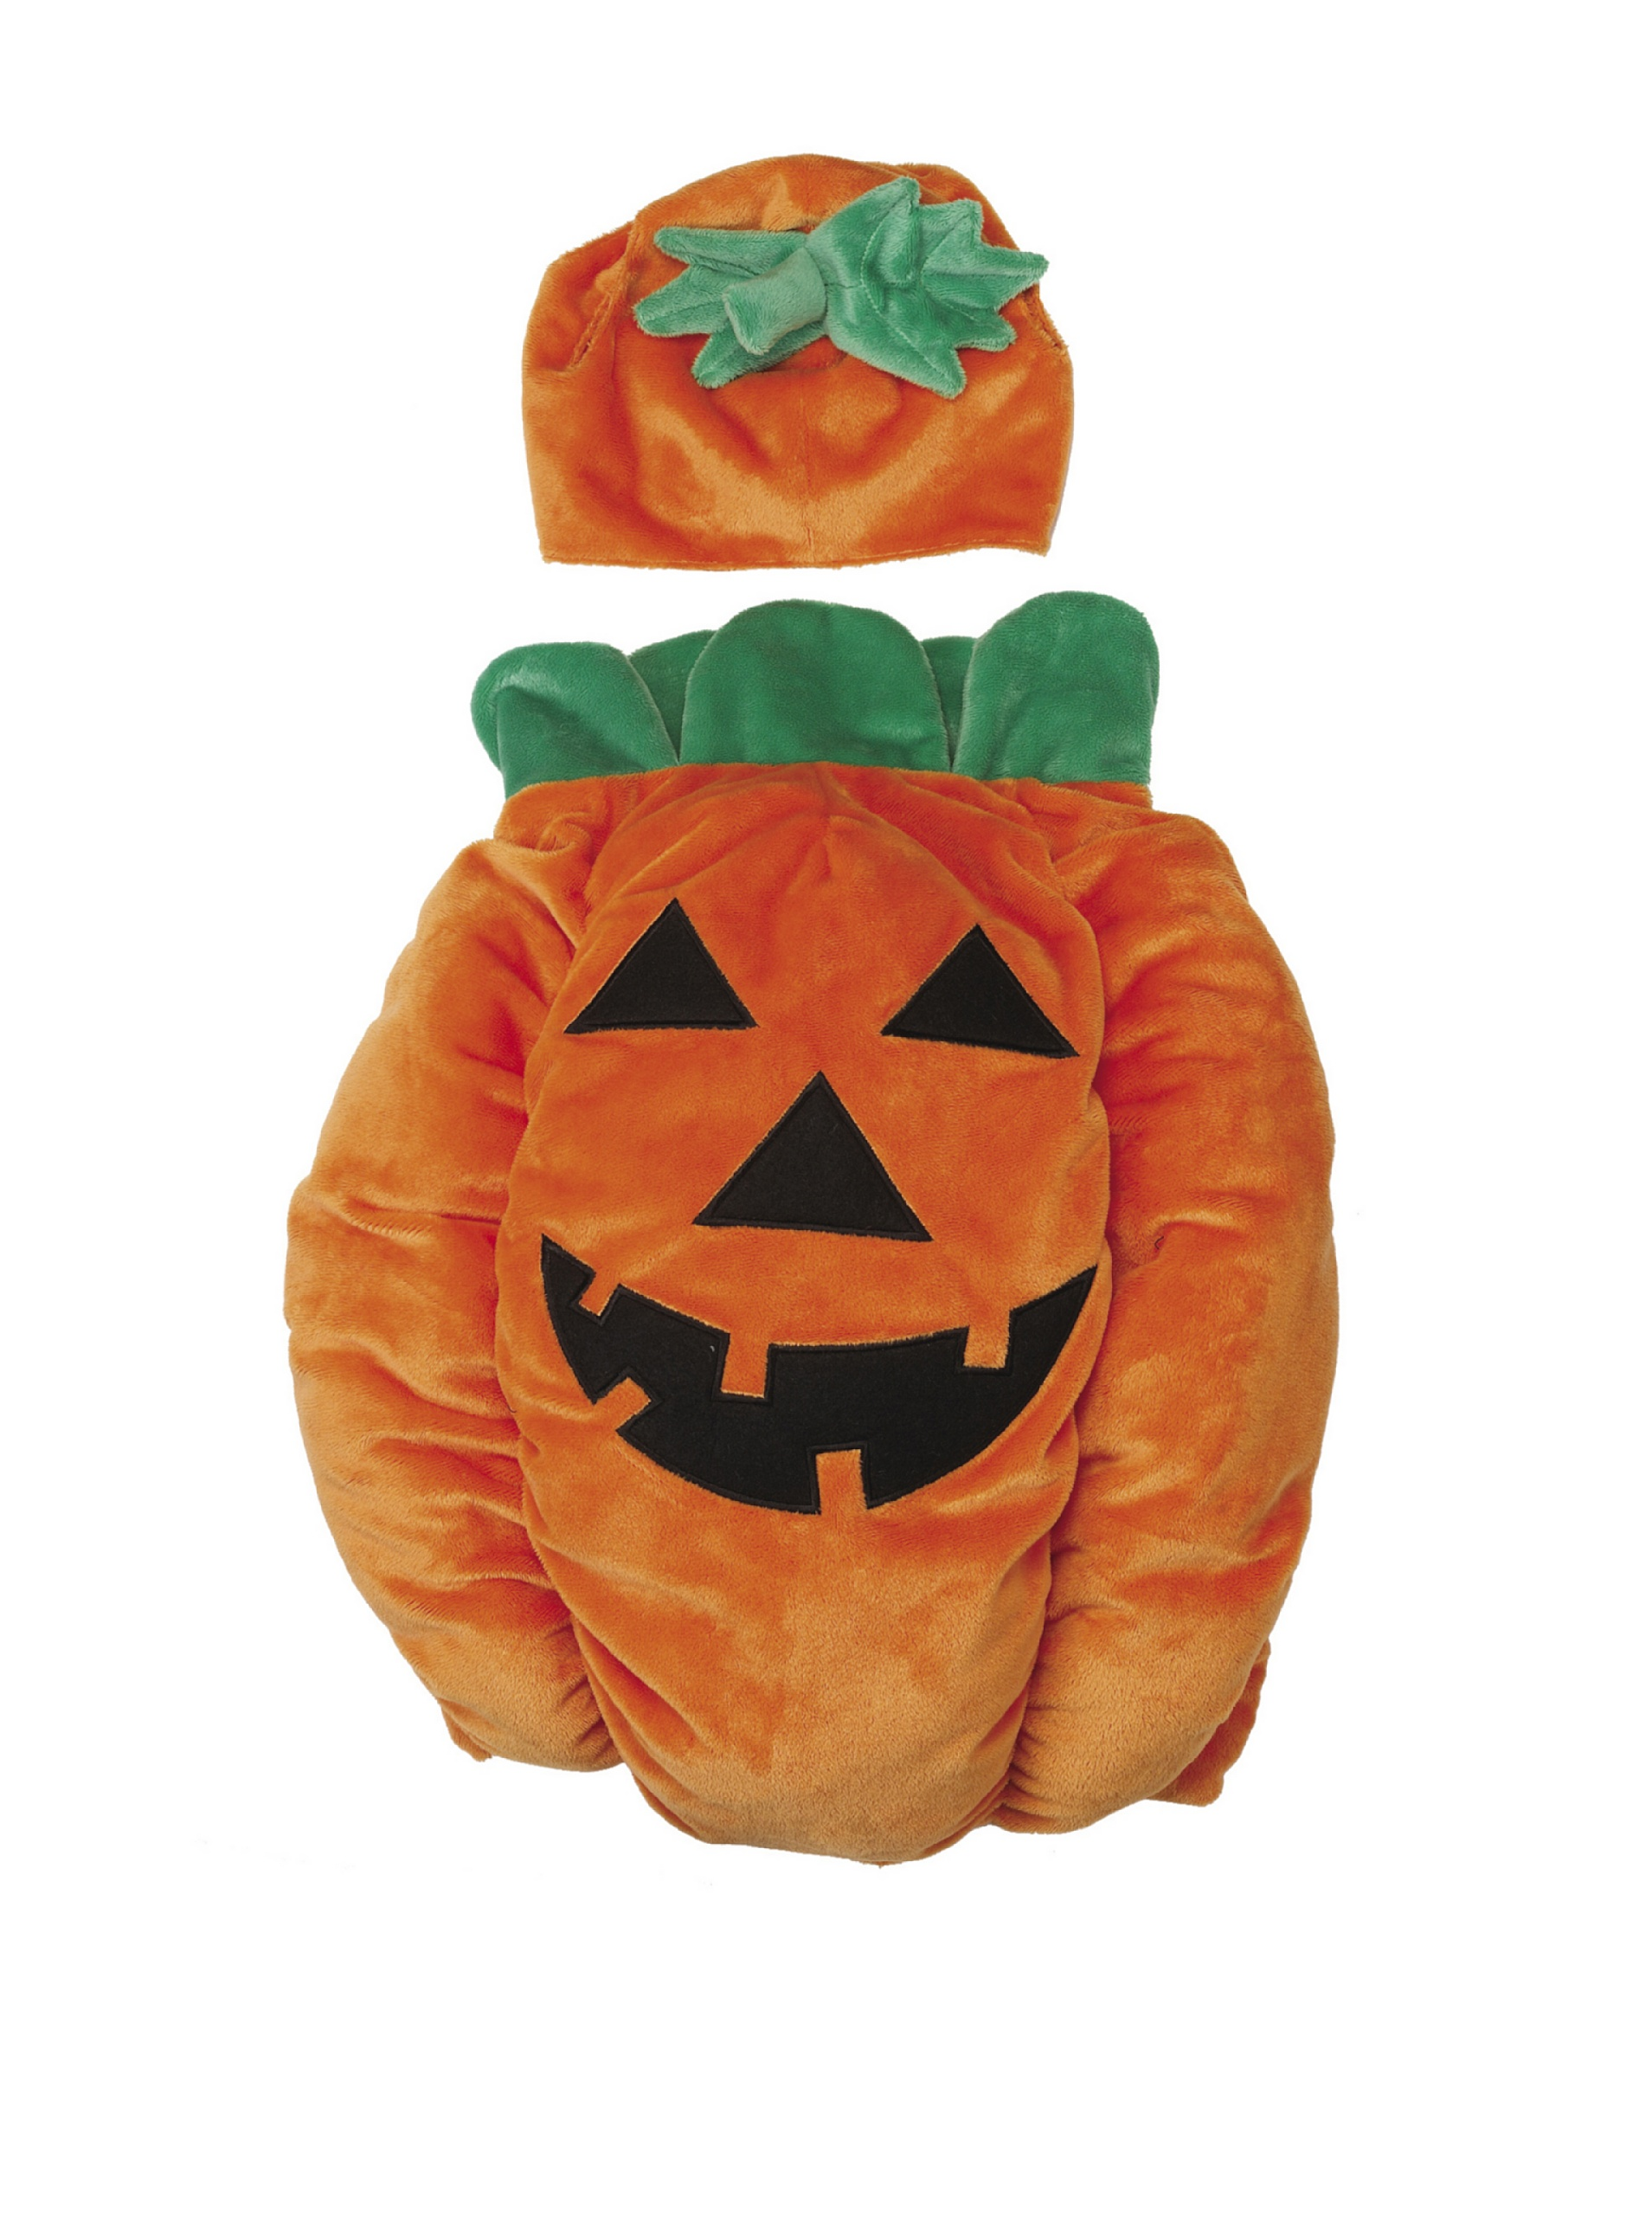 Zack & Zoey Pumpkin Pooch Dog Costume, X-Large, Orange by Zack & Zoey